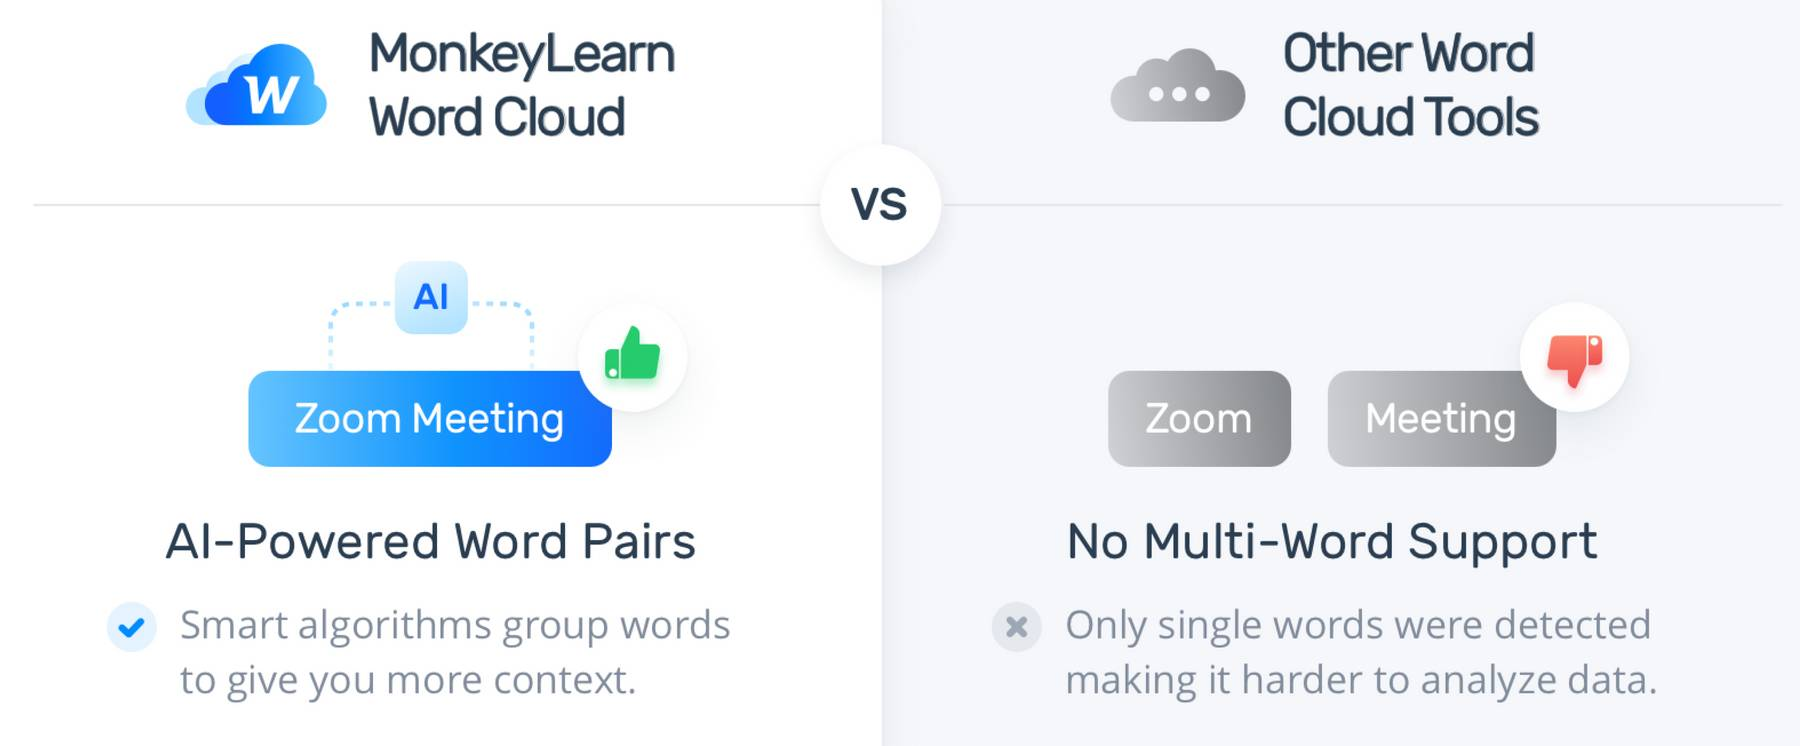 MonkeyLearn vs Other word cloud tools: AI-powered word pairs vs no multi-word support